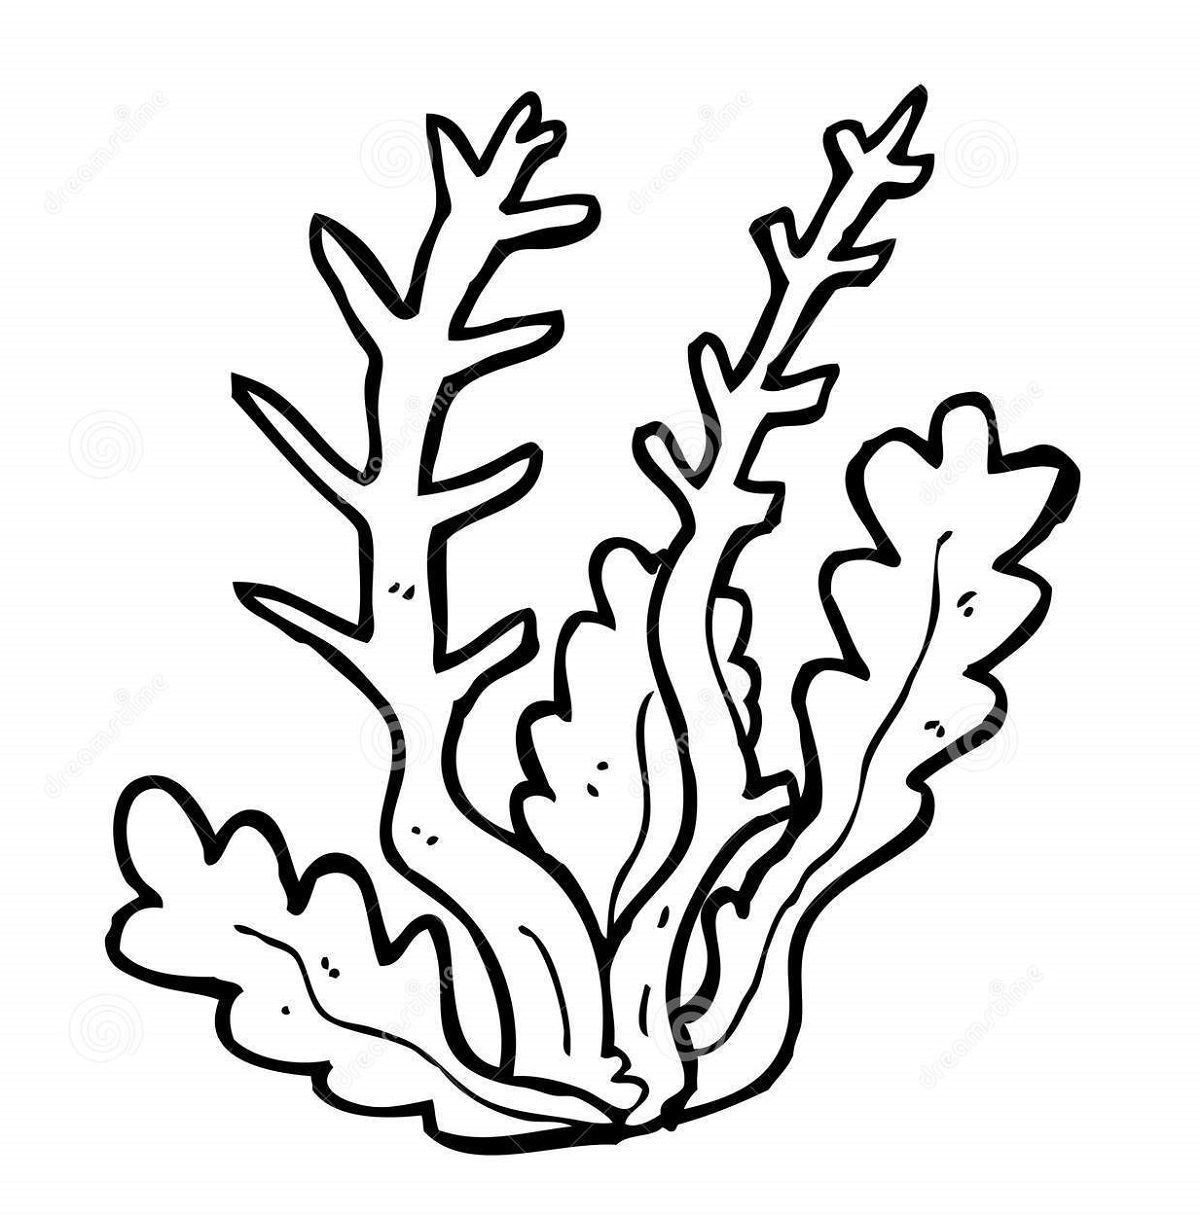 Seaweed Coloring Pages For Kids Coloring Pages Sea Plants